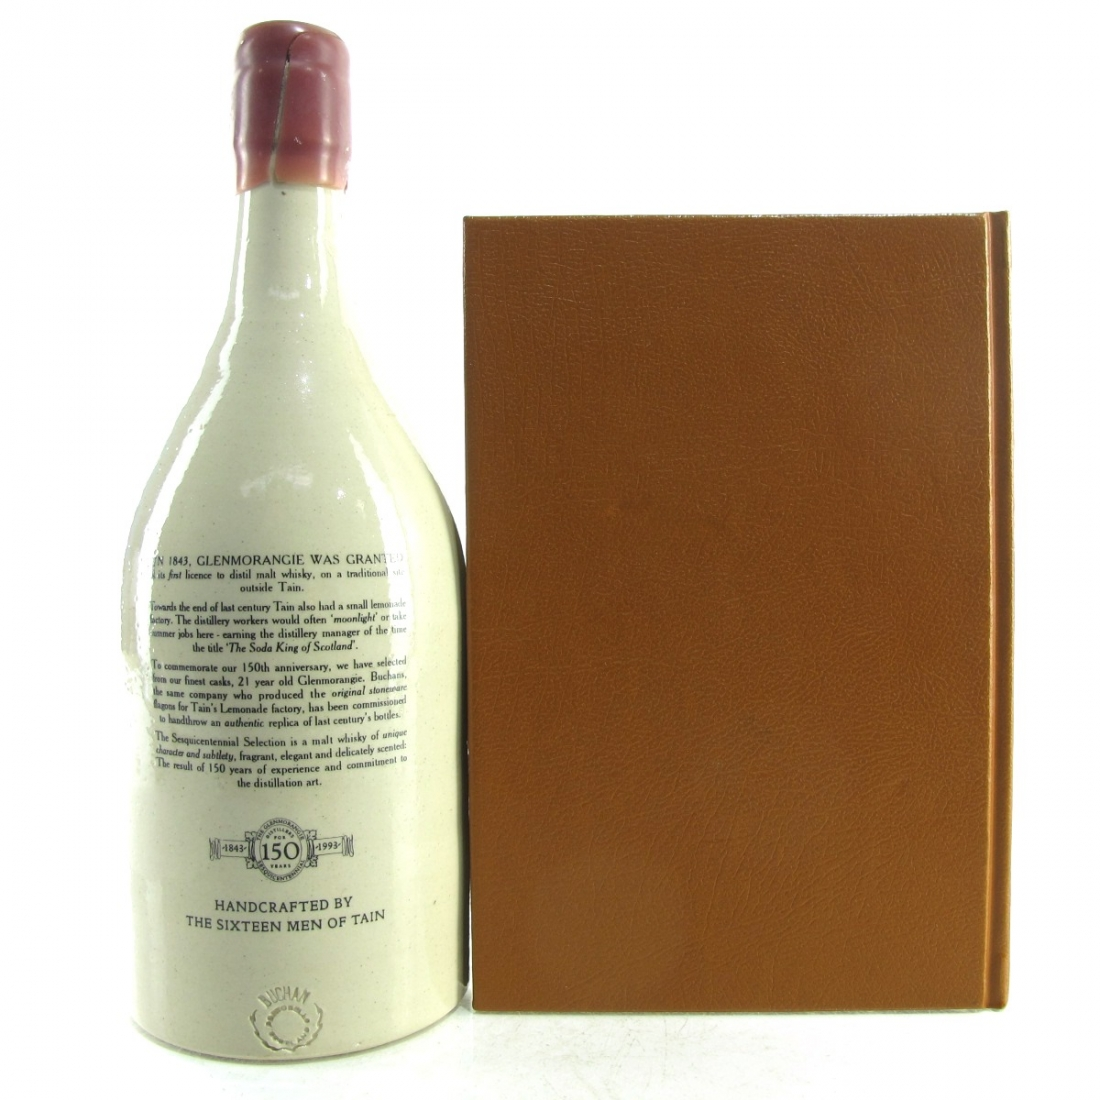 Glenmorangie 21 Year Old Sesquicentennial Decanter / with A Christmas Carol Book